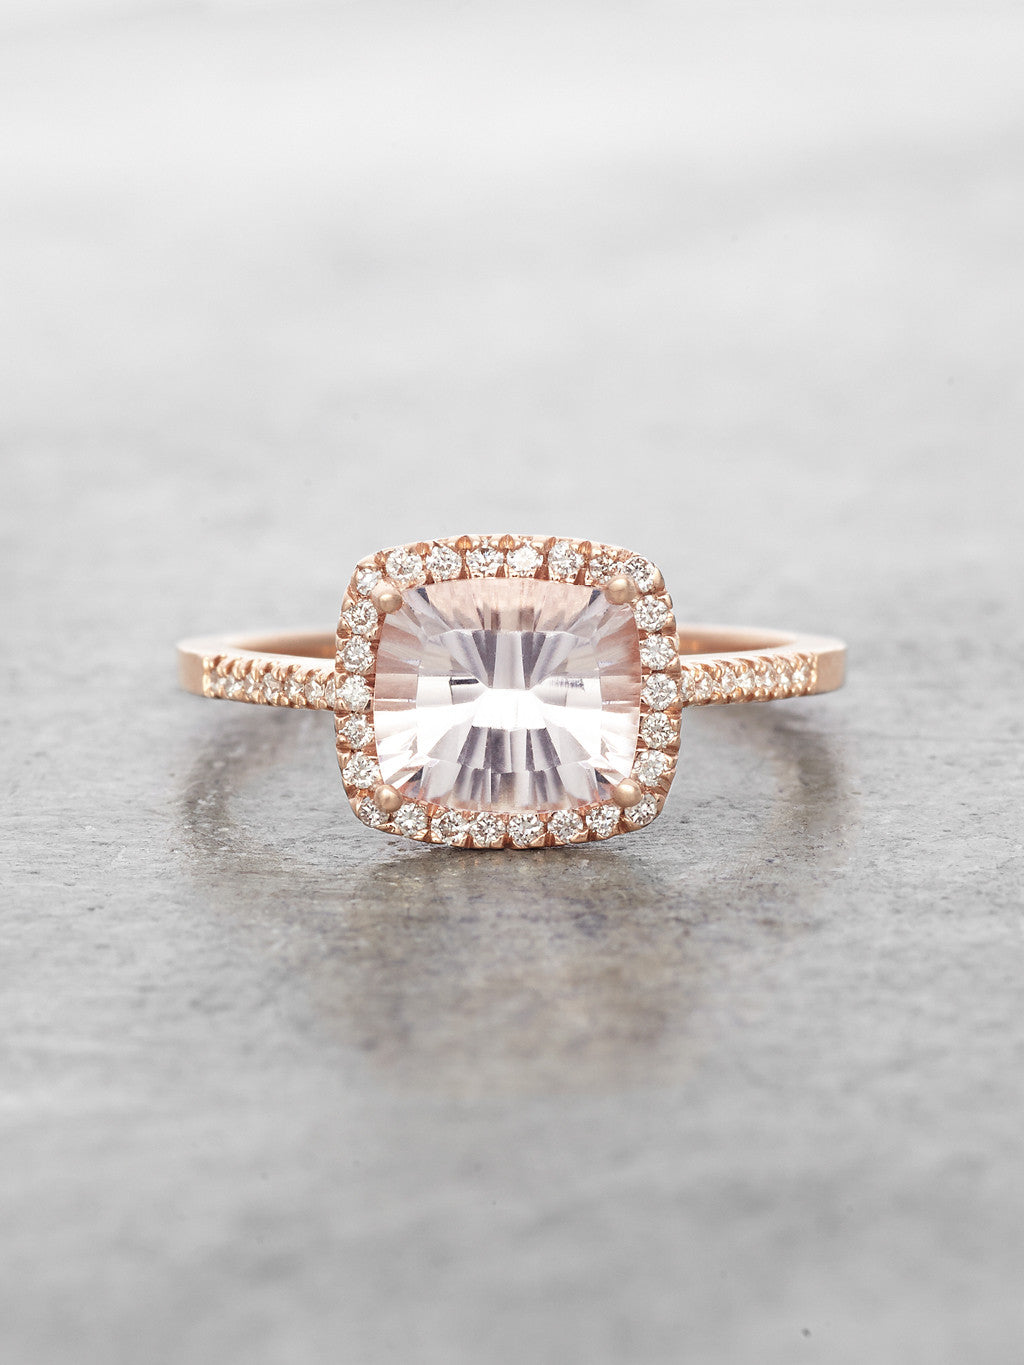 and kate inc oval jewellery ring szabone morganite deposit diamond